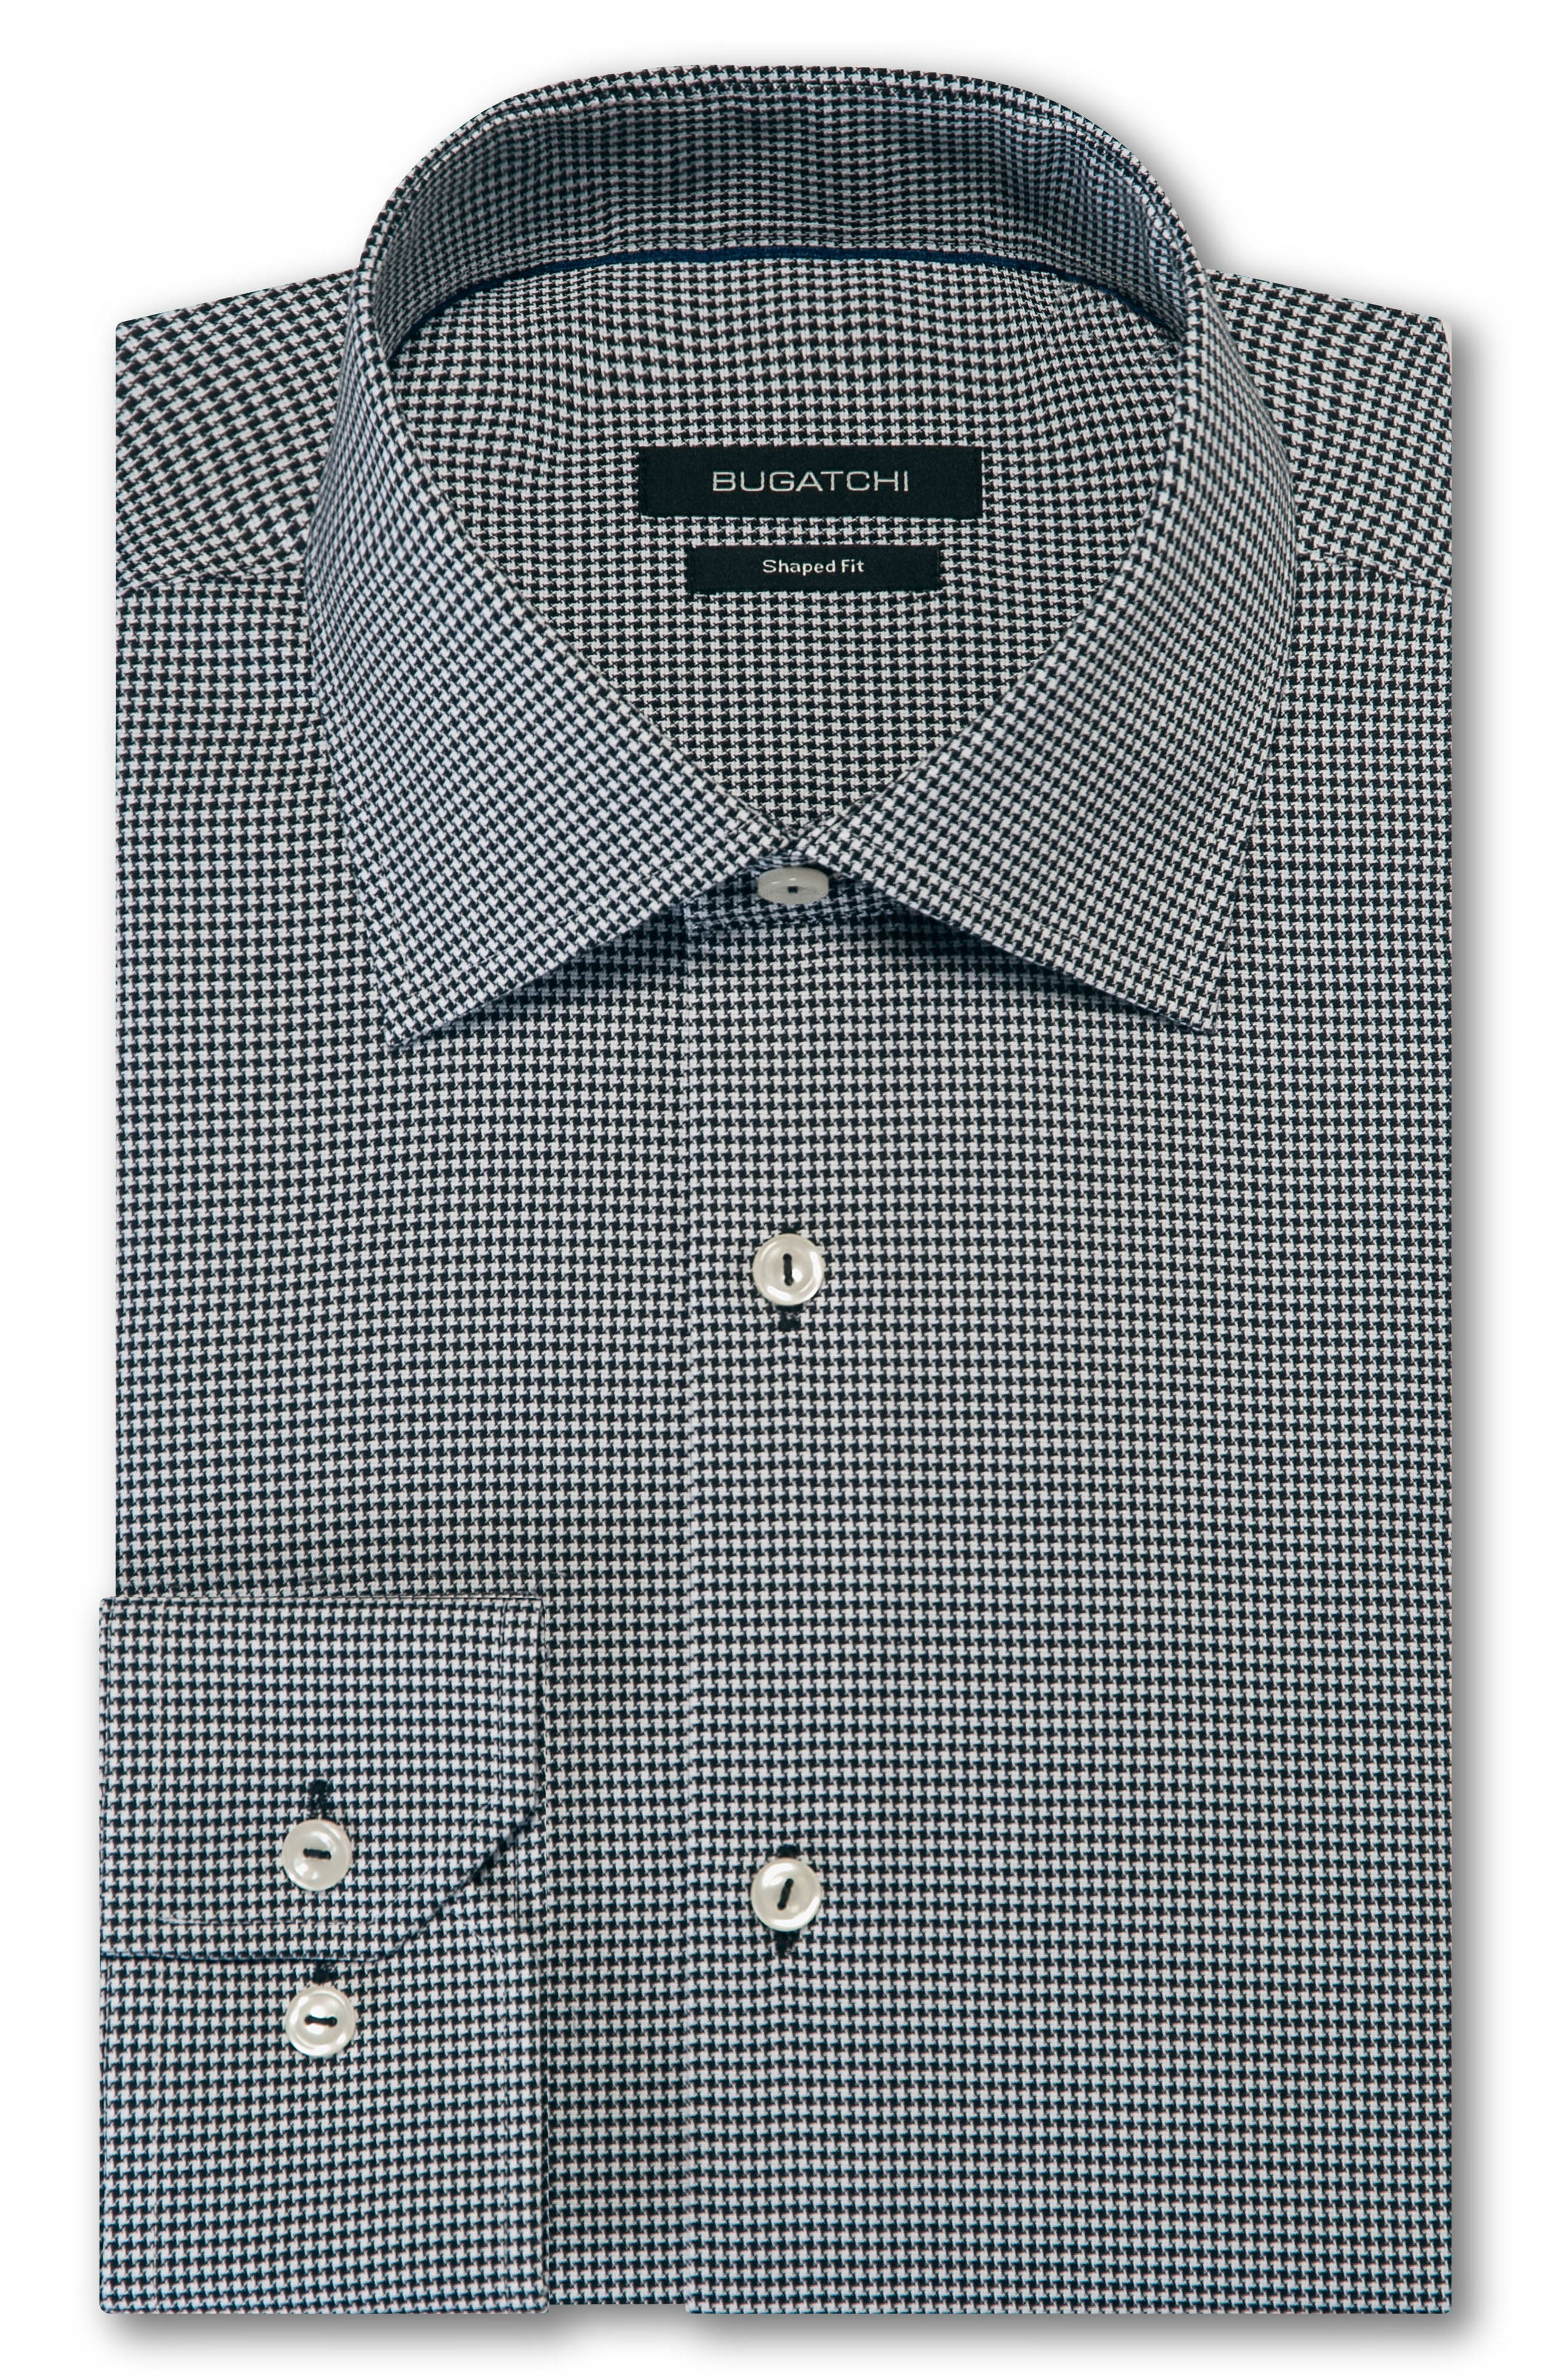 Trim Fit Houndstooth Dress Shirt,                             Main thumbnail 1, color,                             BLACK